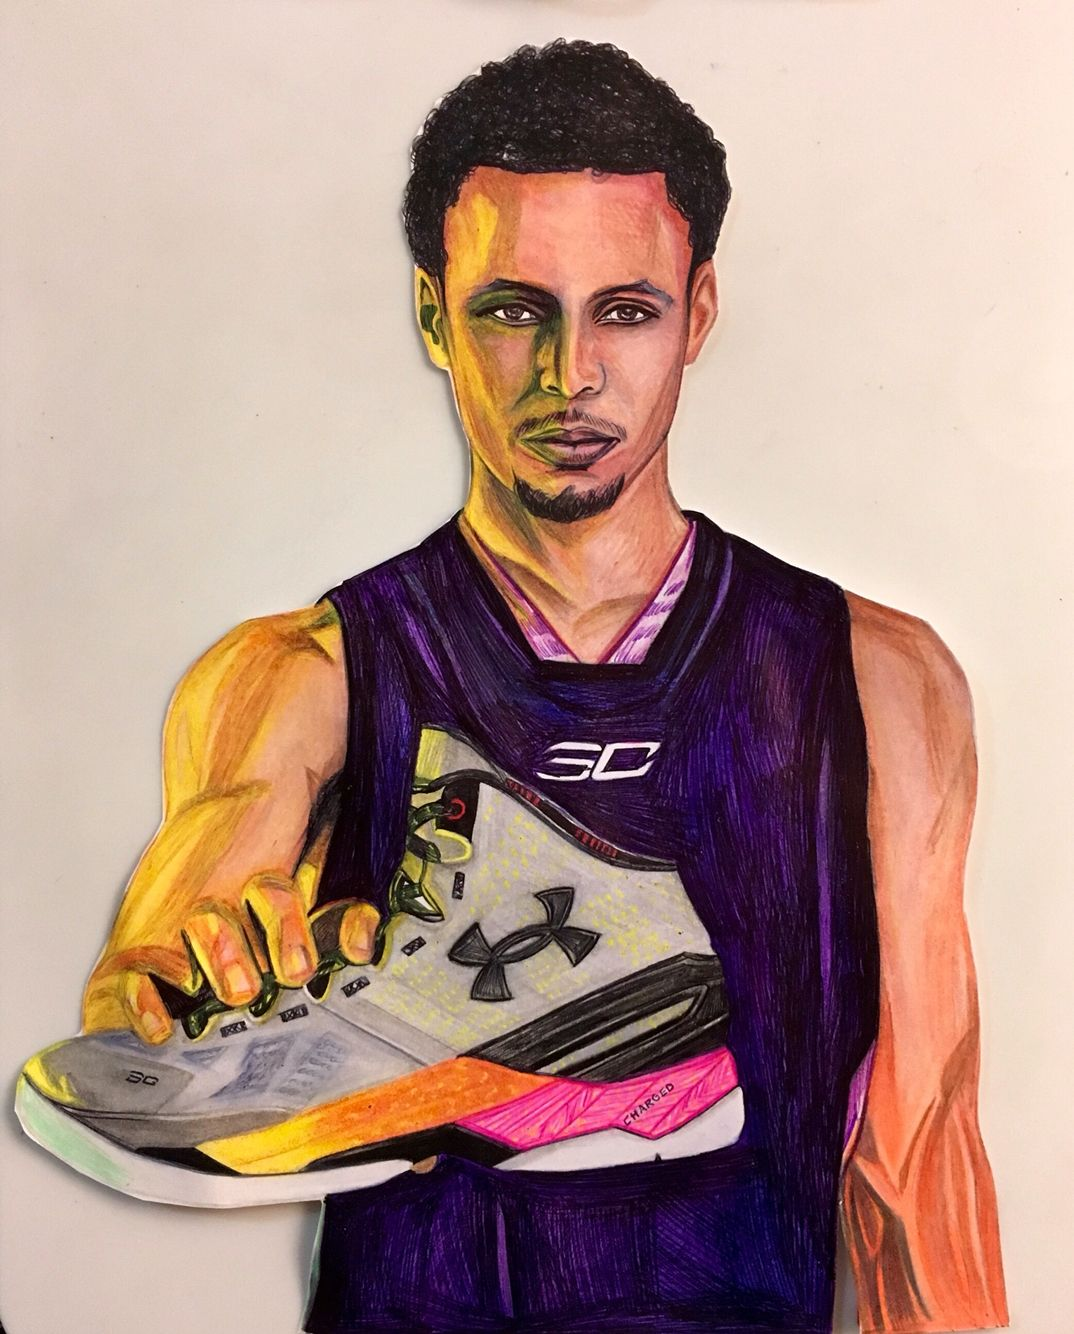 66b7178c79d Stephen Curry Under Armour artwork! Go Golden State Warriors! Personally  hand drawn.@